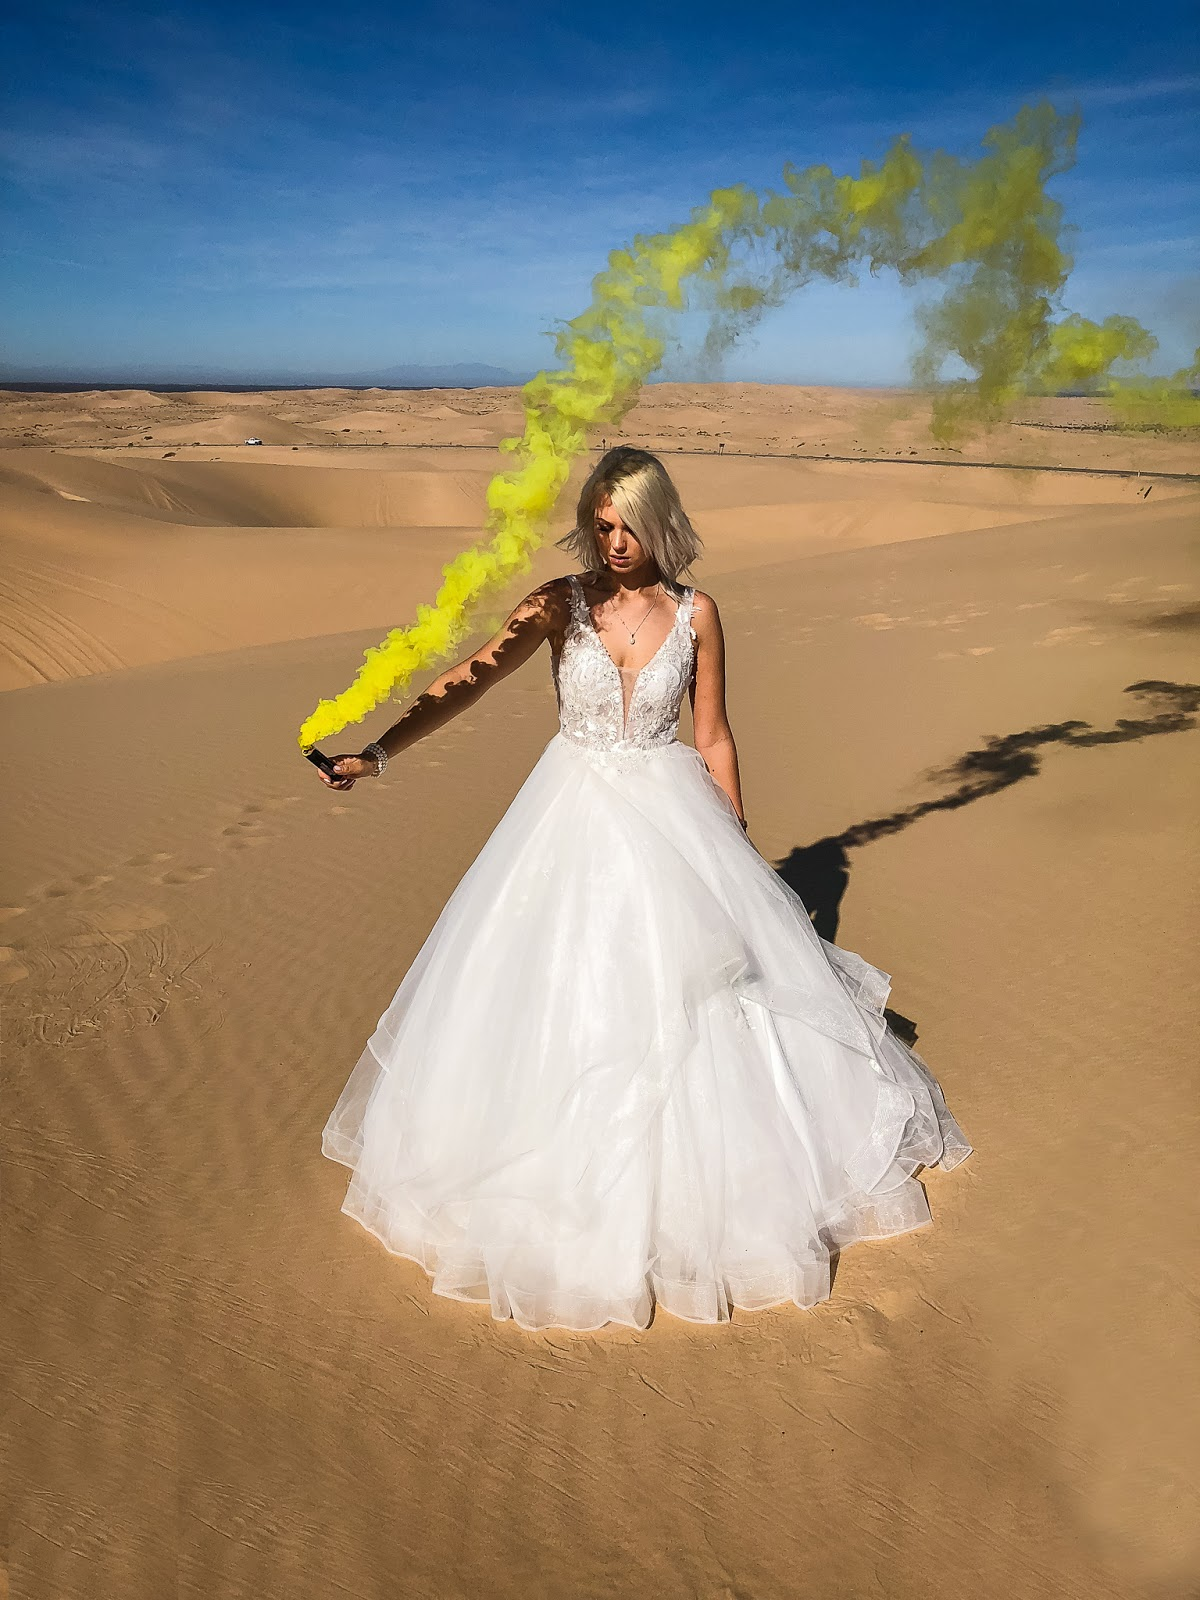 wedding smoke bomb photoshoot